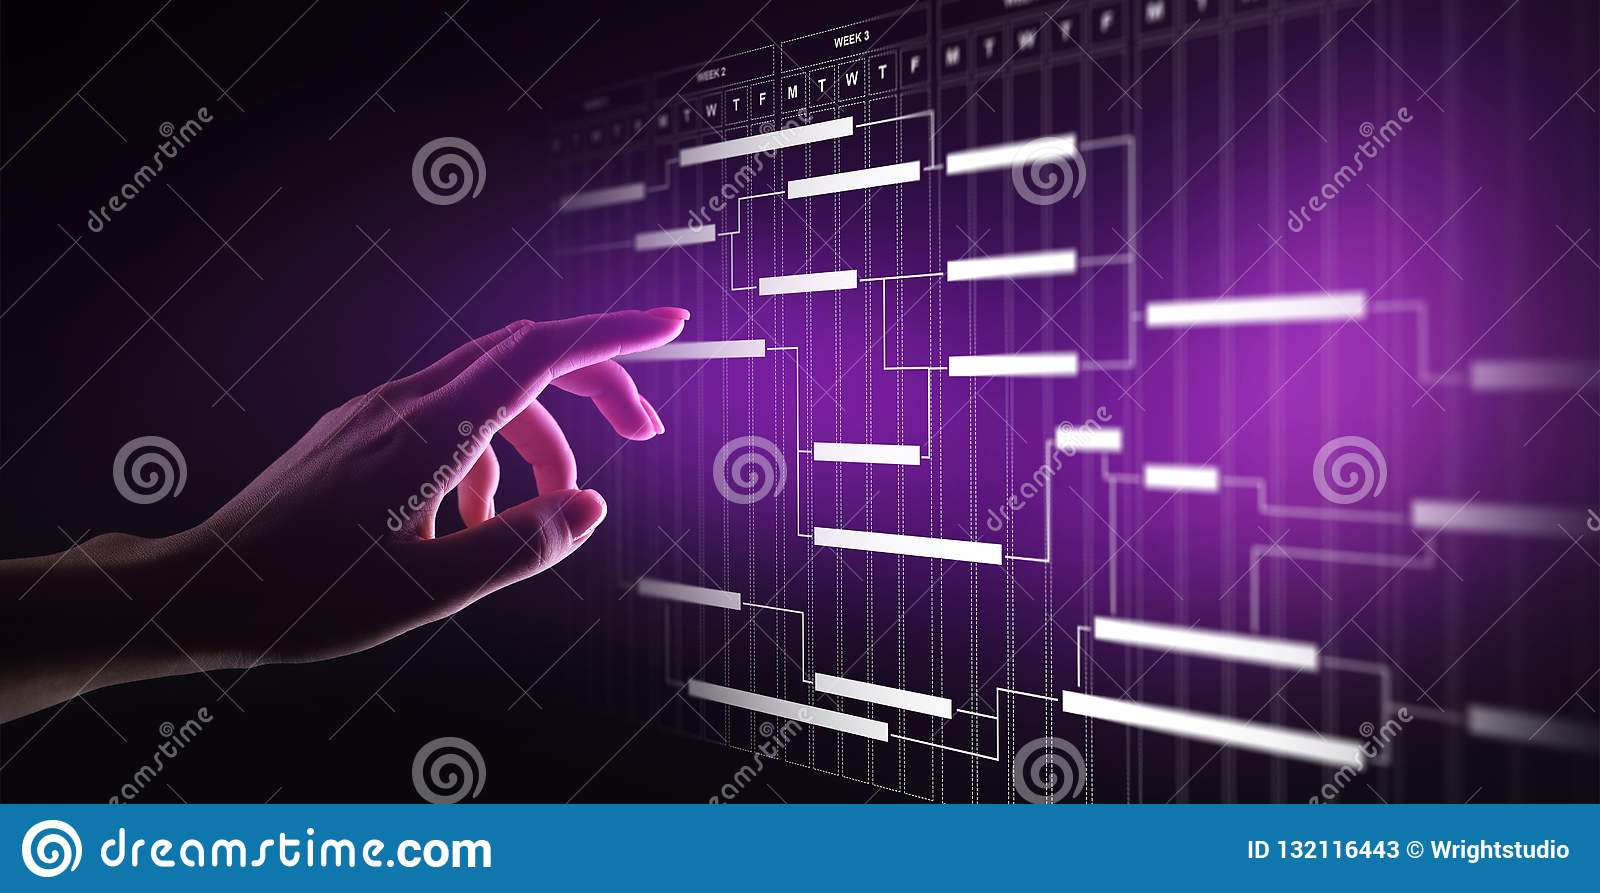 Project management diagram, time management, business and technology concept on virtual screen.